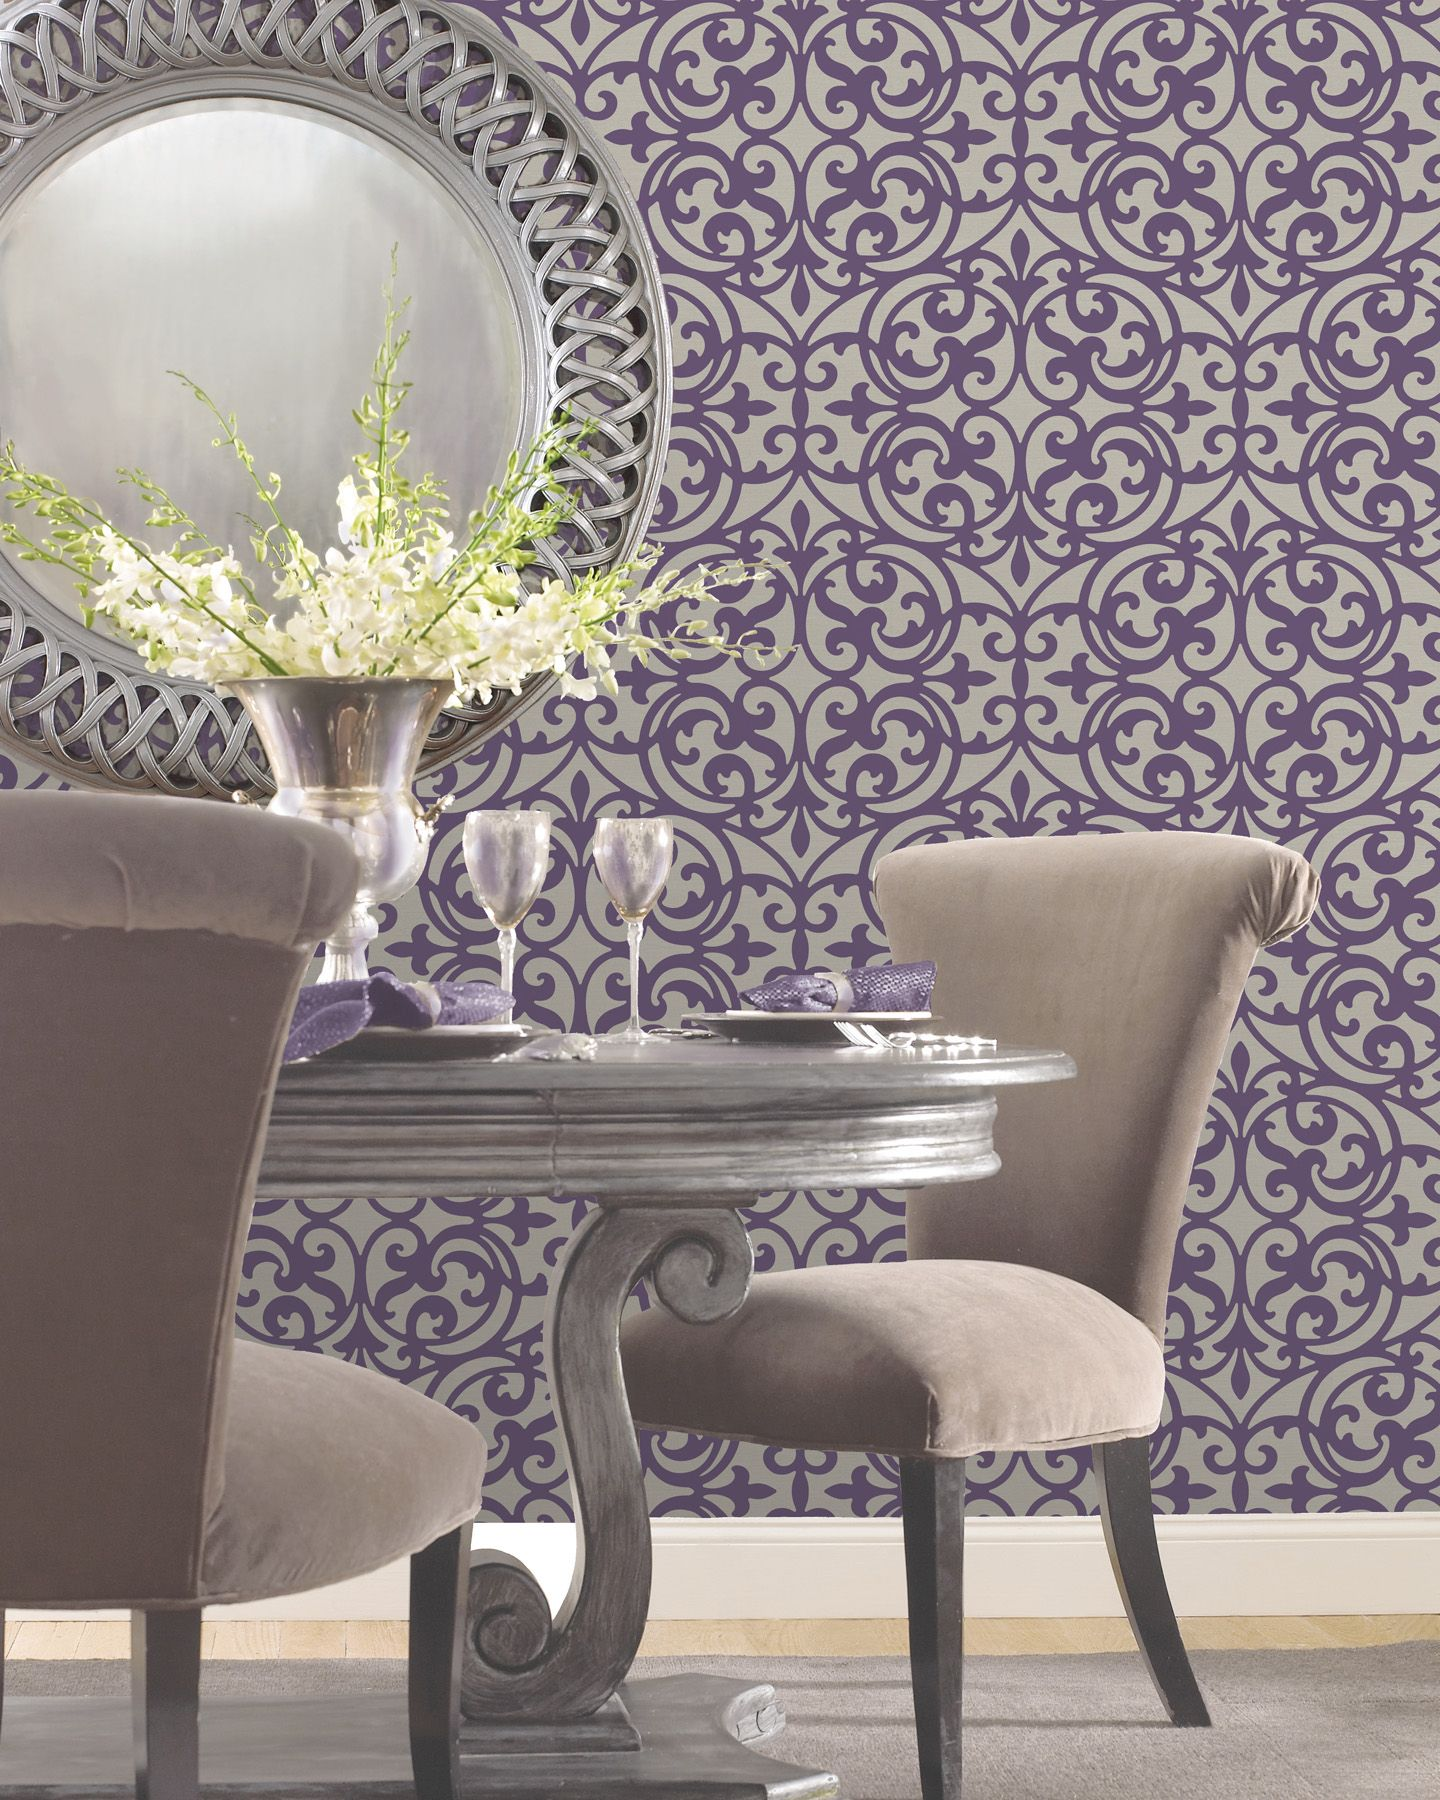 Purple dining room feature wall wallpaper decor idea (With